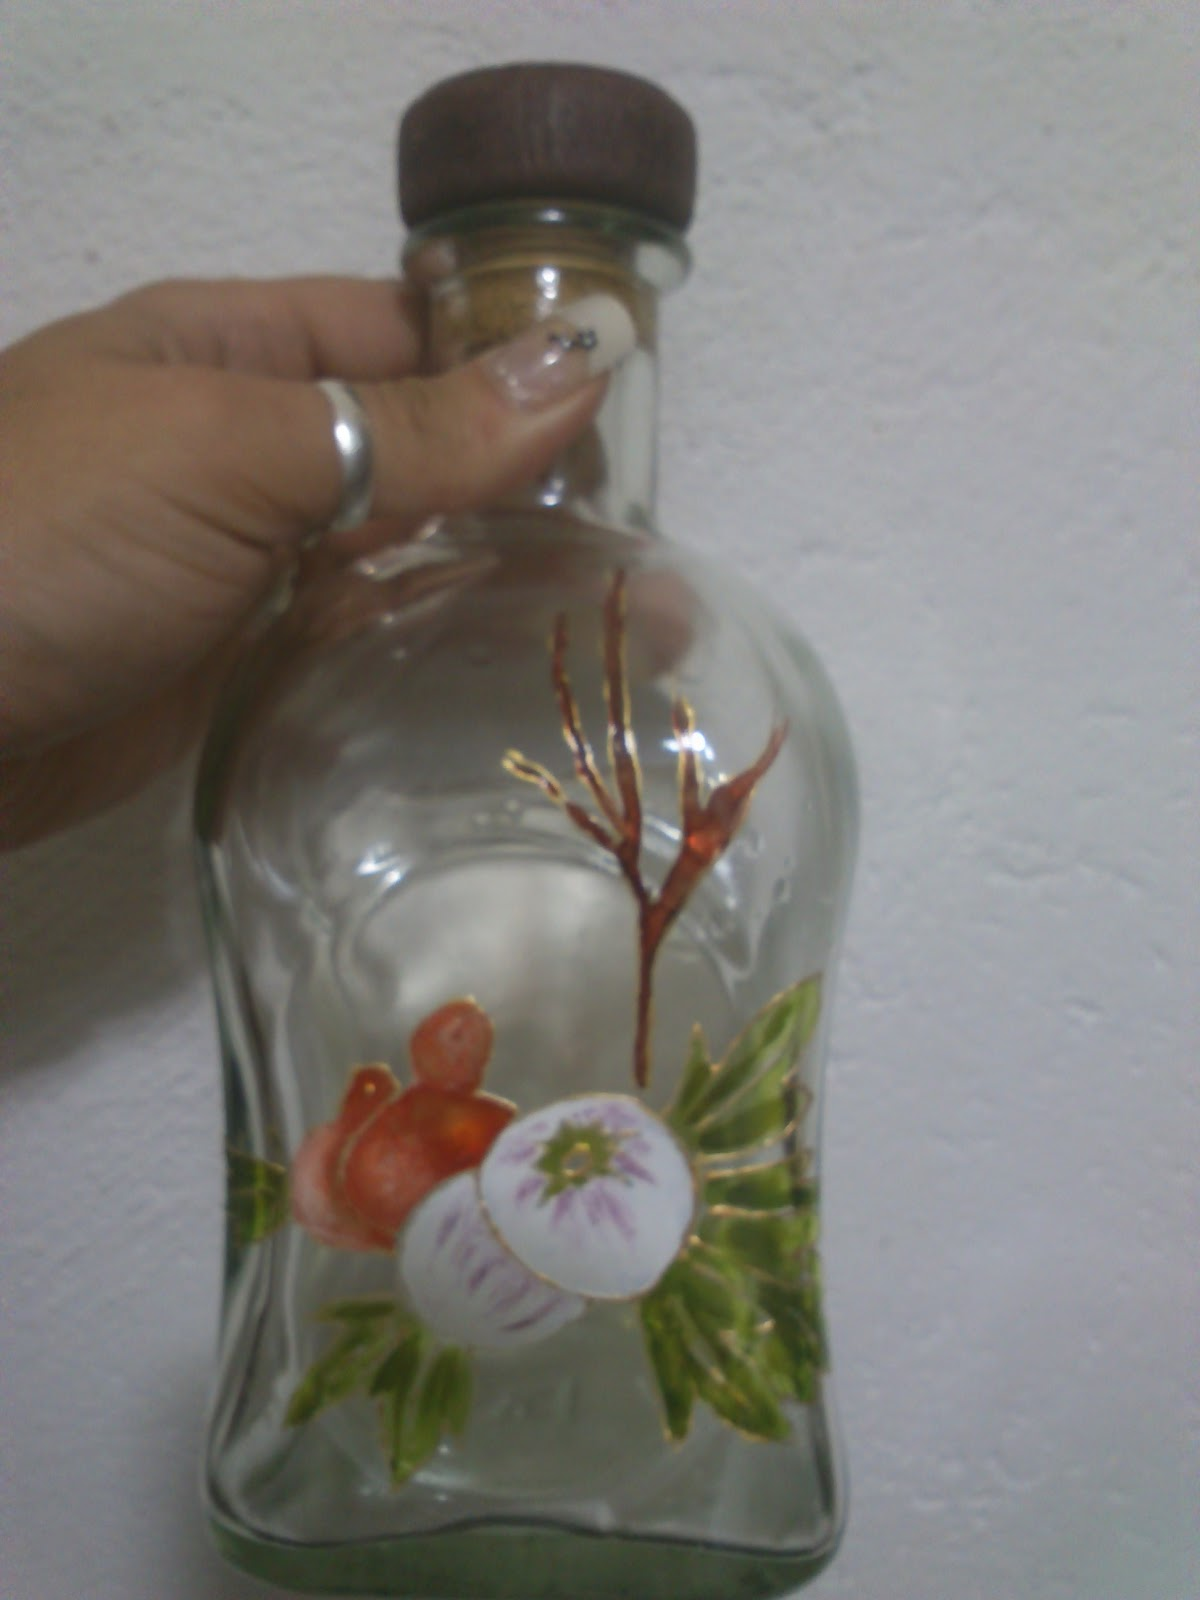 Comprar Botellas Decoradas El Blog De Crocosmia Botellas Pintadas A Mano